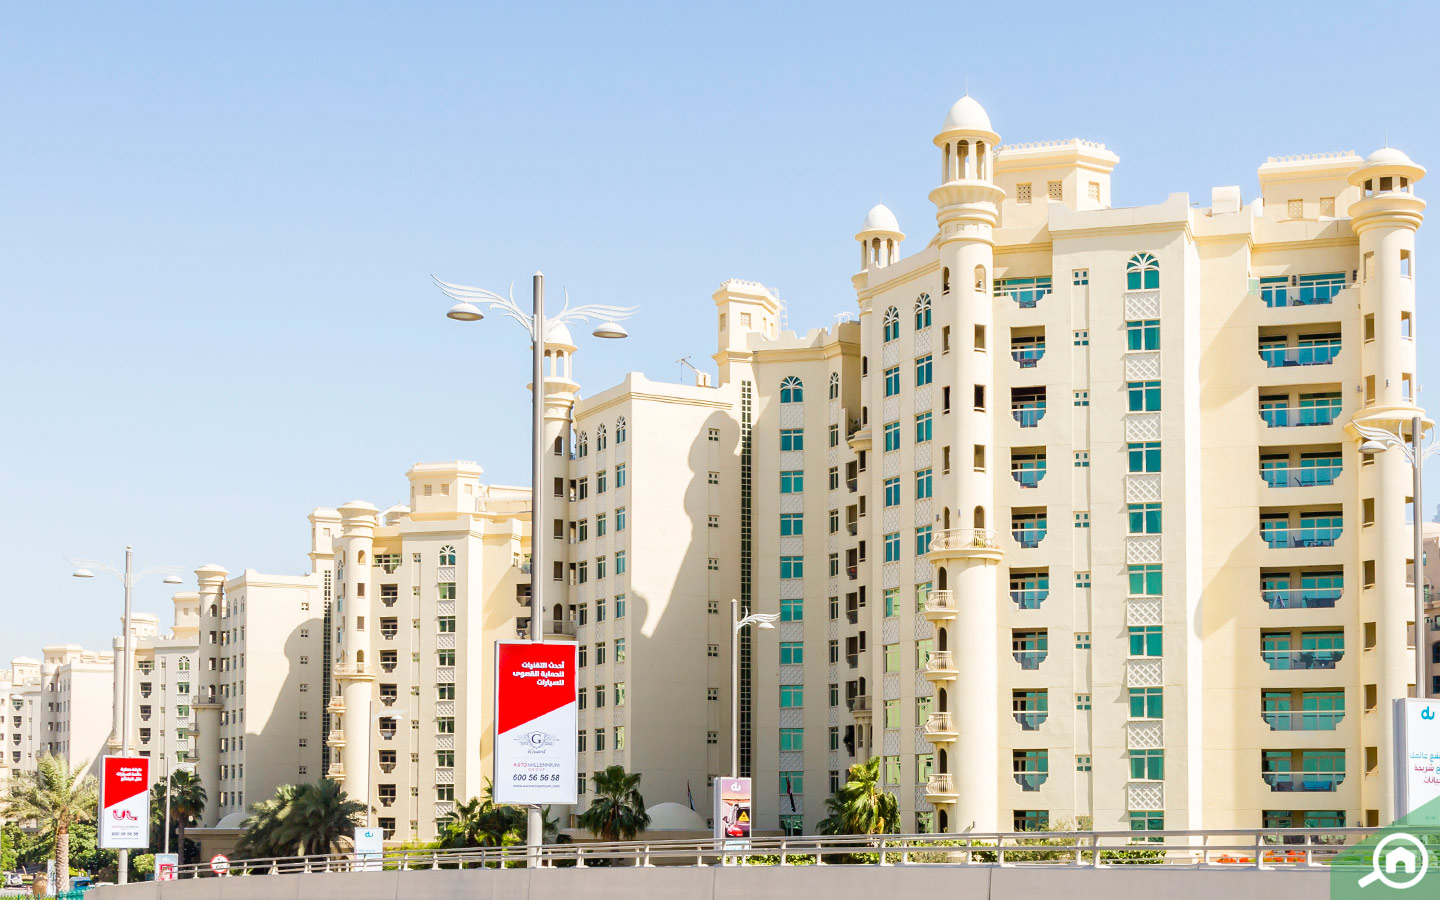 Best Areas to Rent in Dubai Based on Your Salary - MyBayut